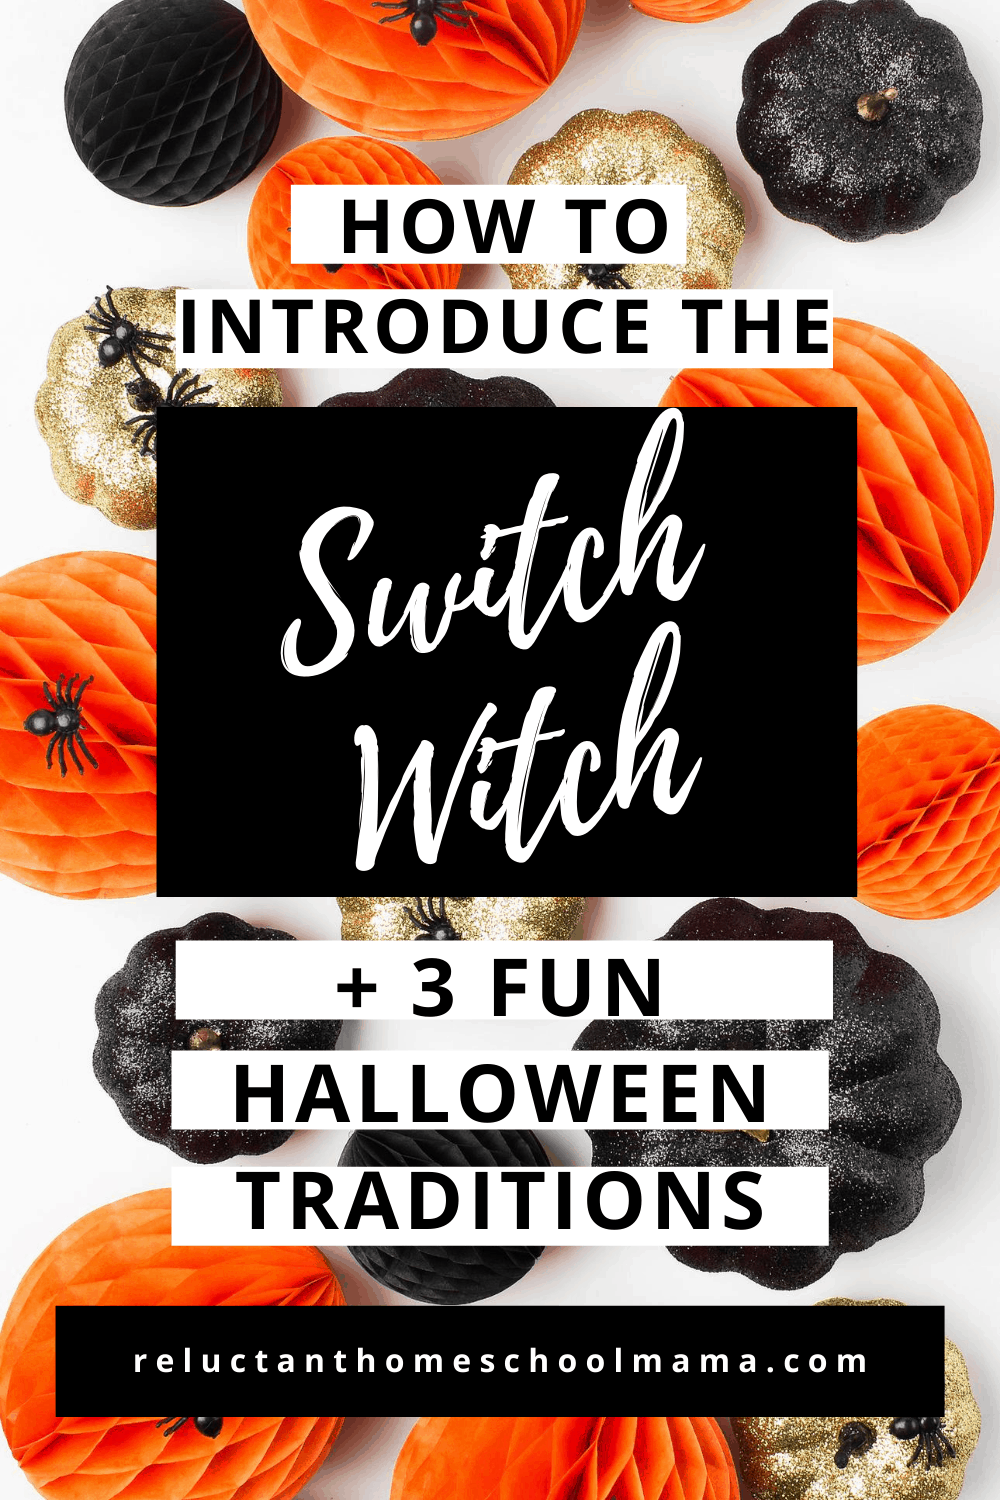 The Switch Witch (and 3 Ways to Not Miss Out on Halloween Fun)